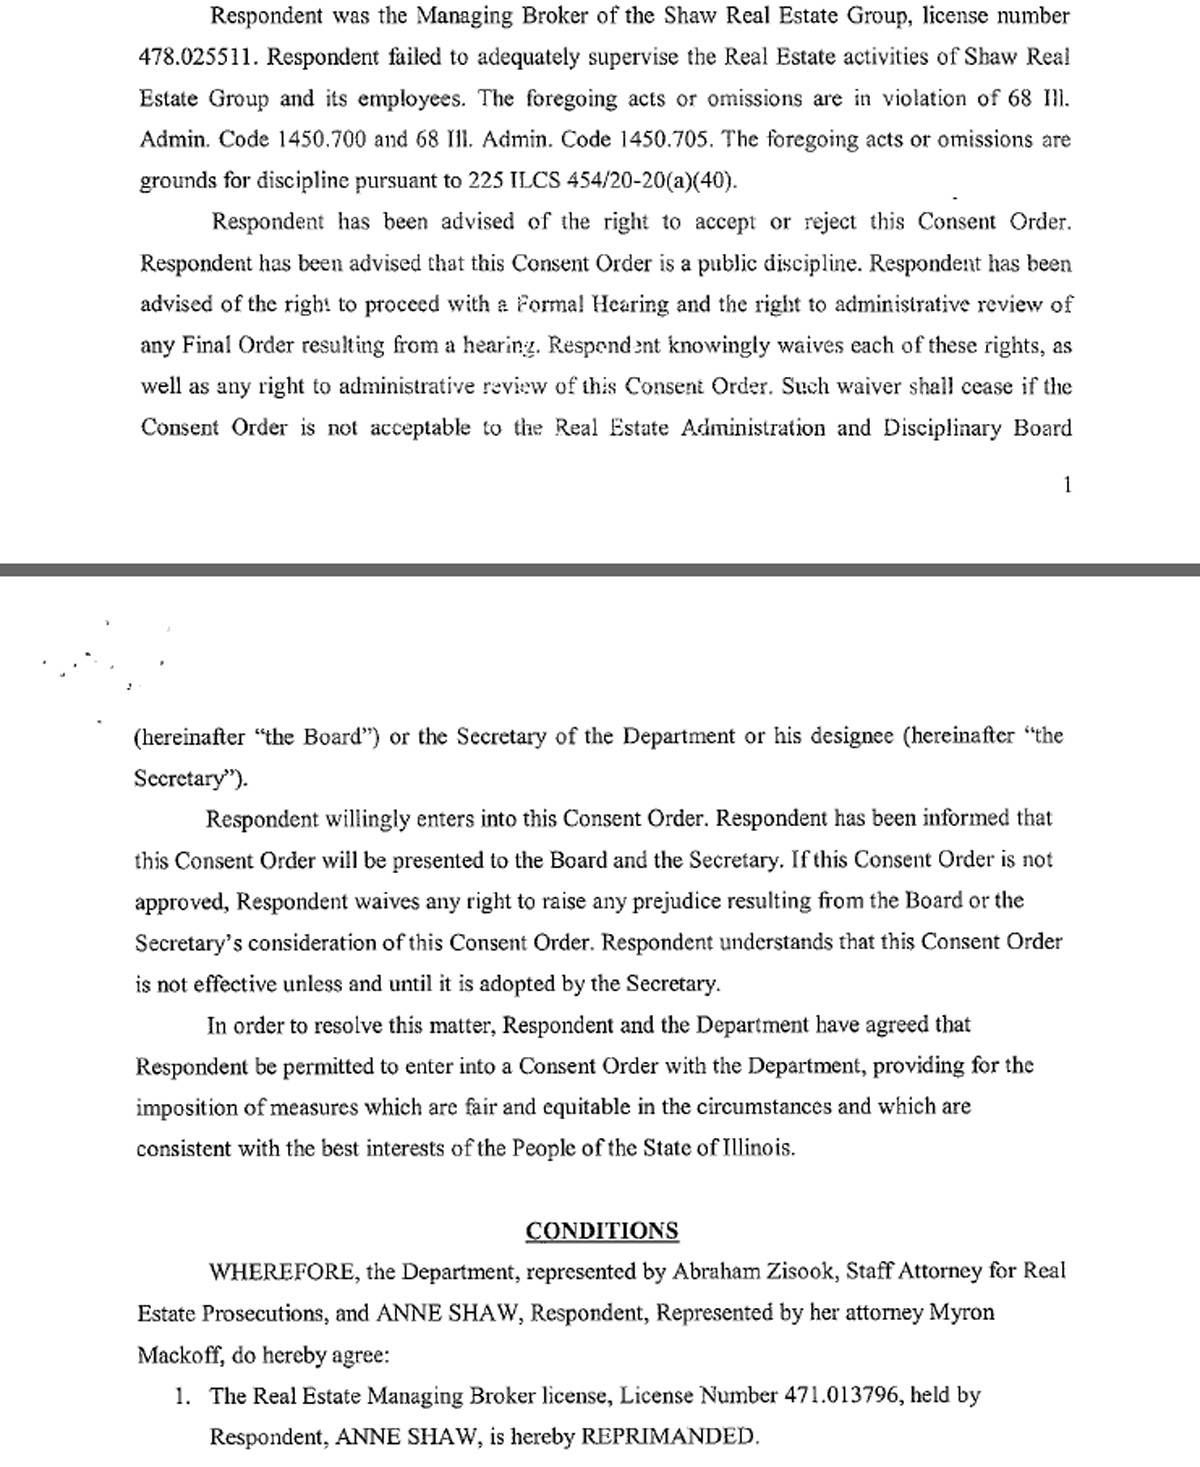 In March 2016, Anne Shaw signed this consent order with the Illinois Department of Financial and Professional Regulation, agreeing to accept a reprimand on her real estate managing broker's license.